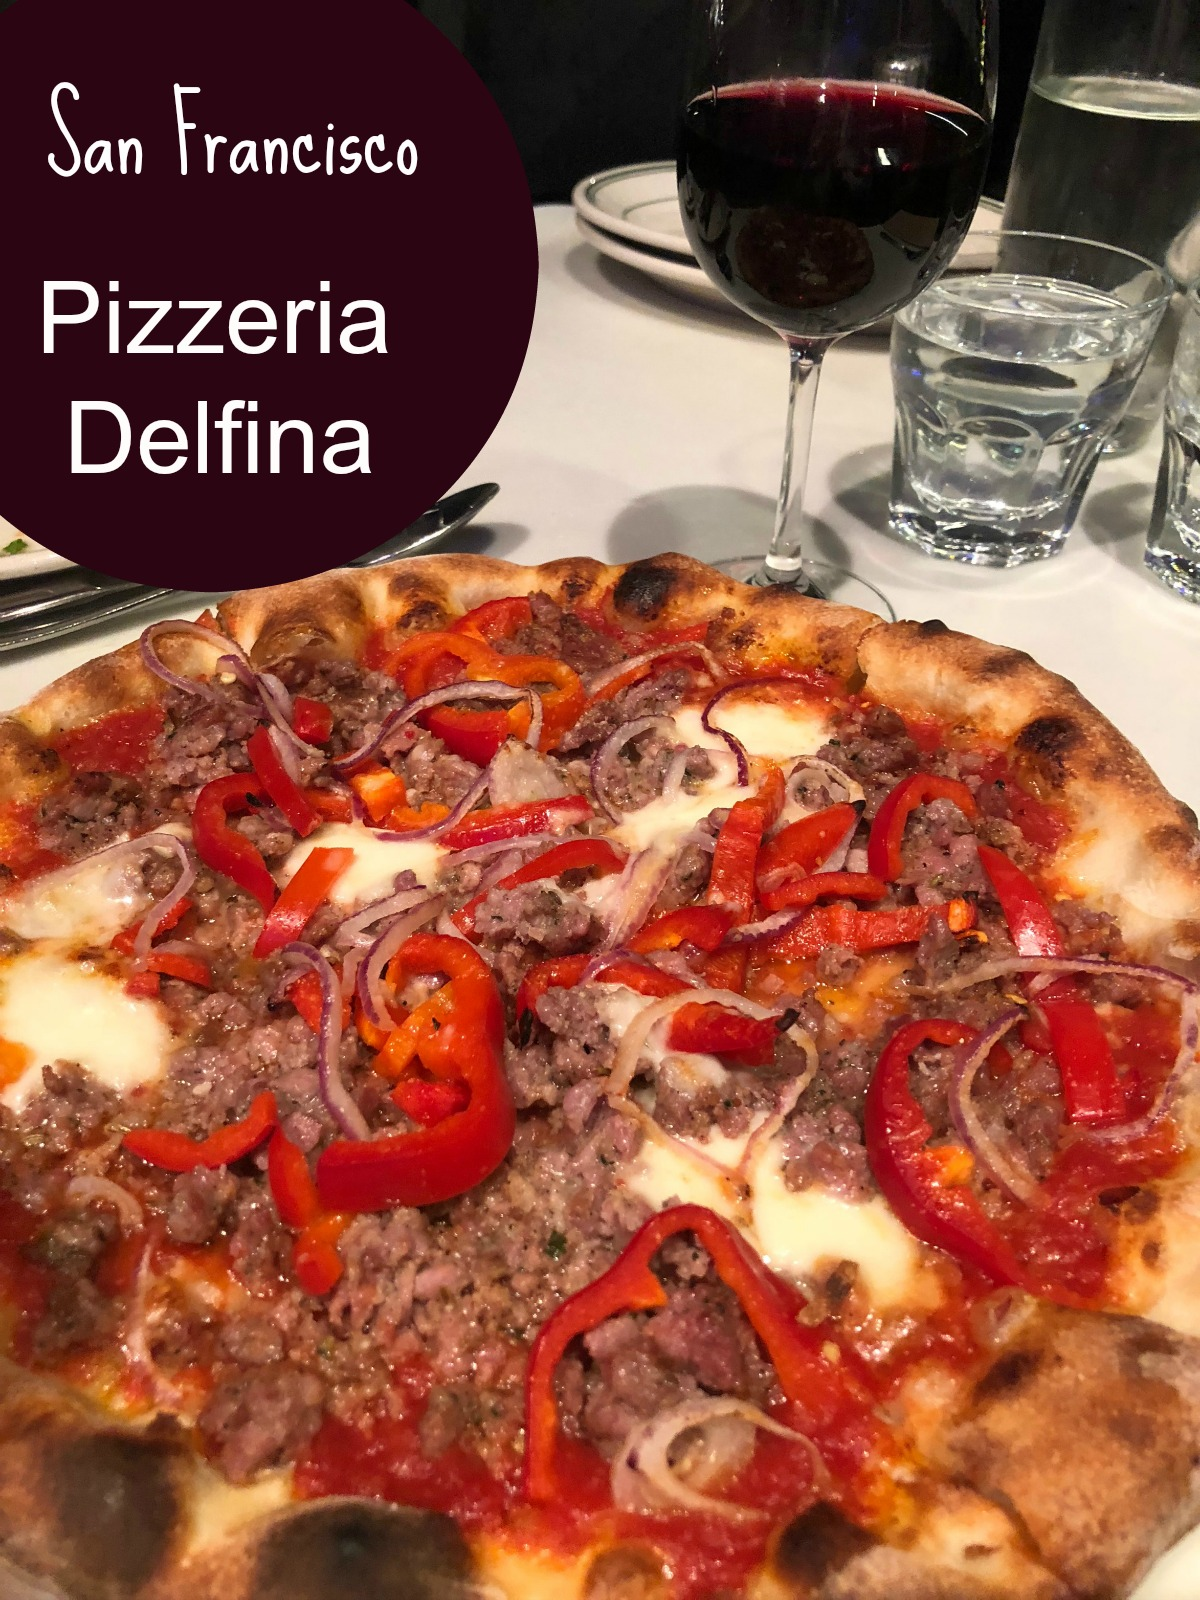 San Fransisco in 48 Hours, Pizzeria Delfina from Spinach Tiger